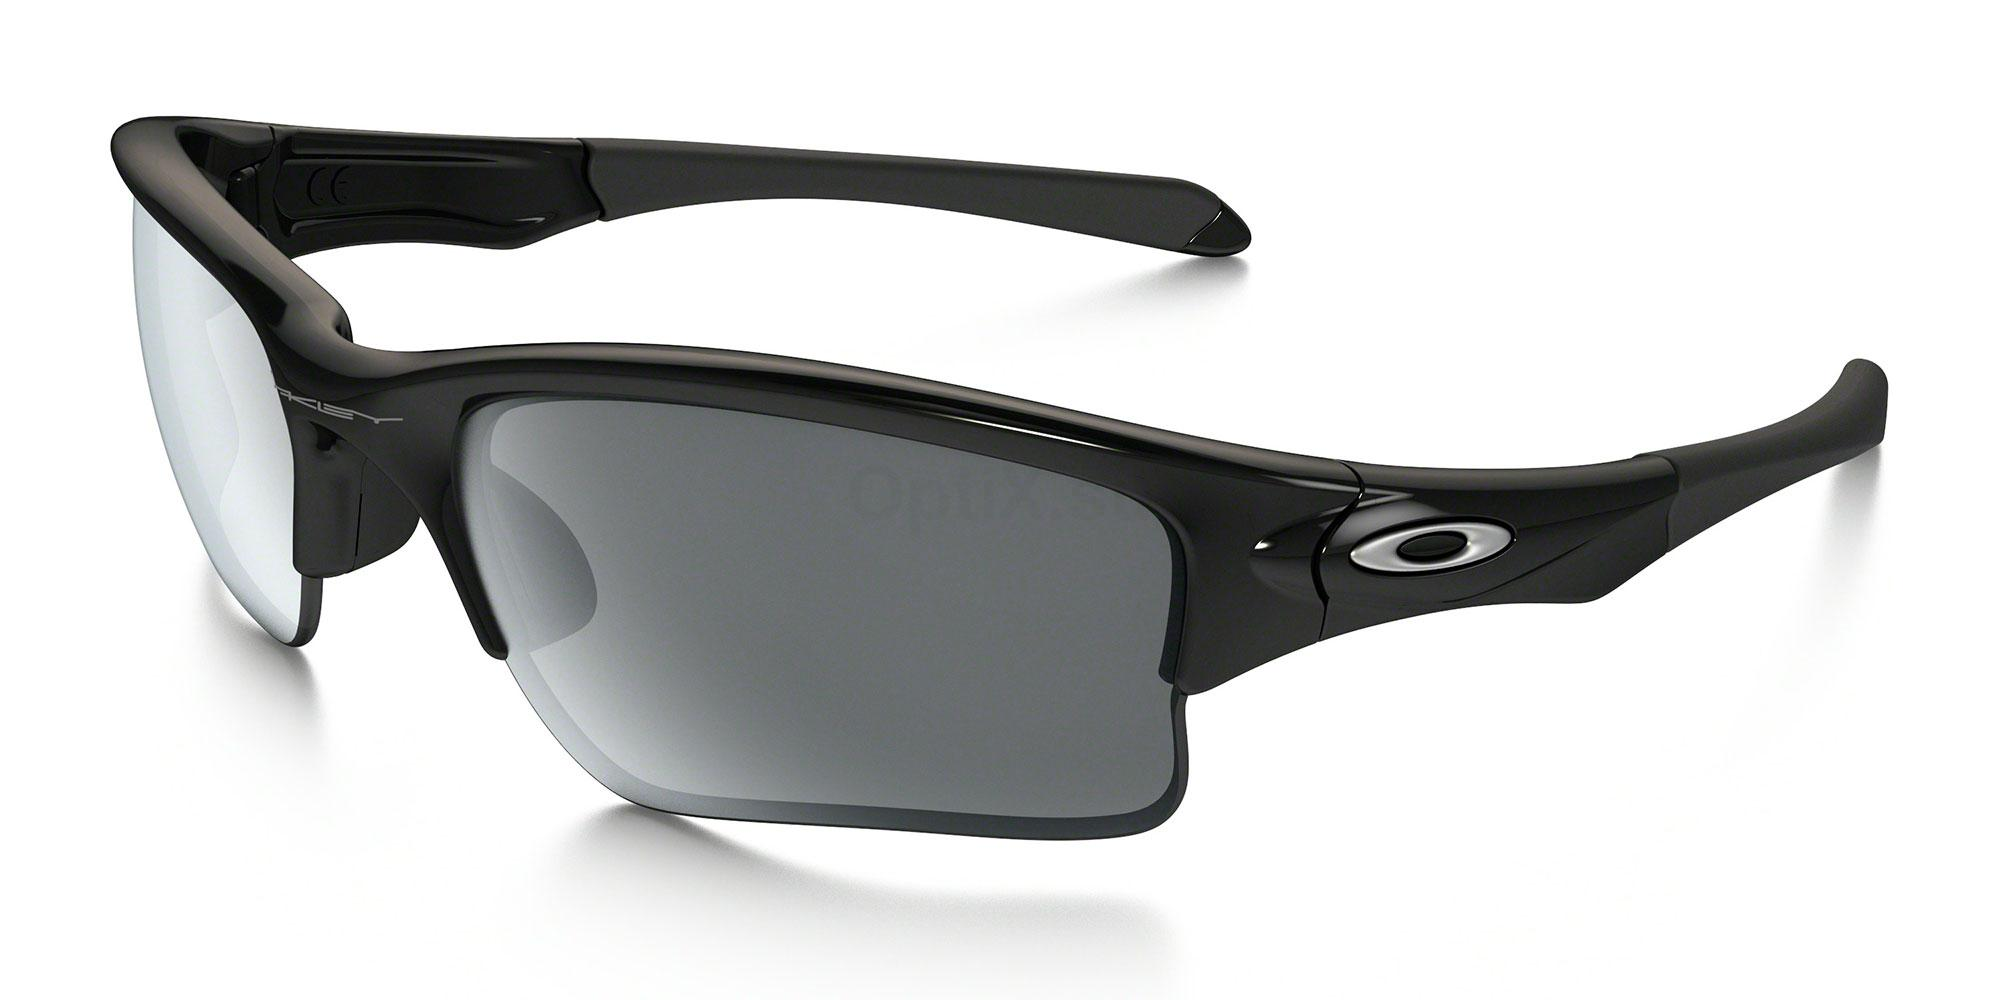 920001 OO9200 QUARTER JACKET (YOUTH FIT) Sunglasses, Oakley